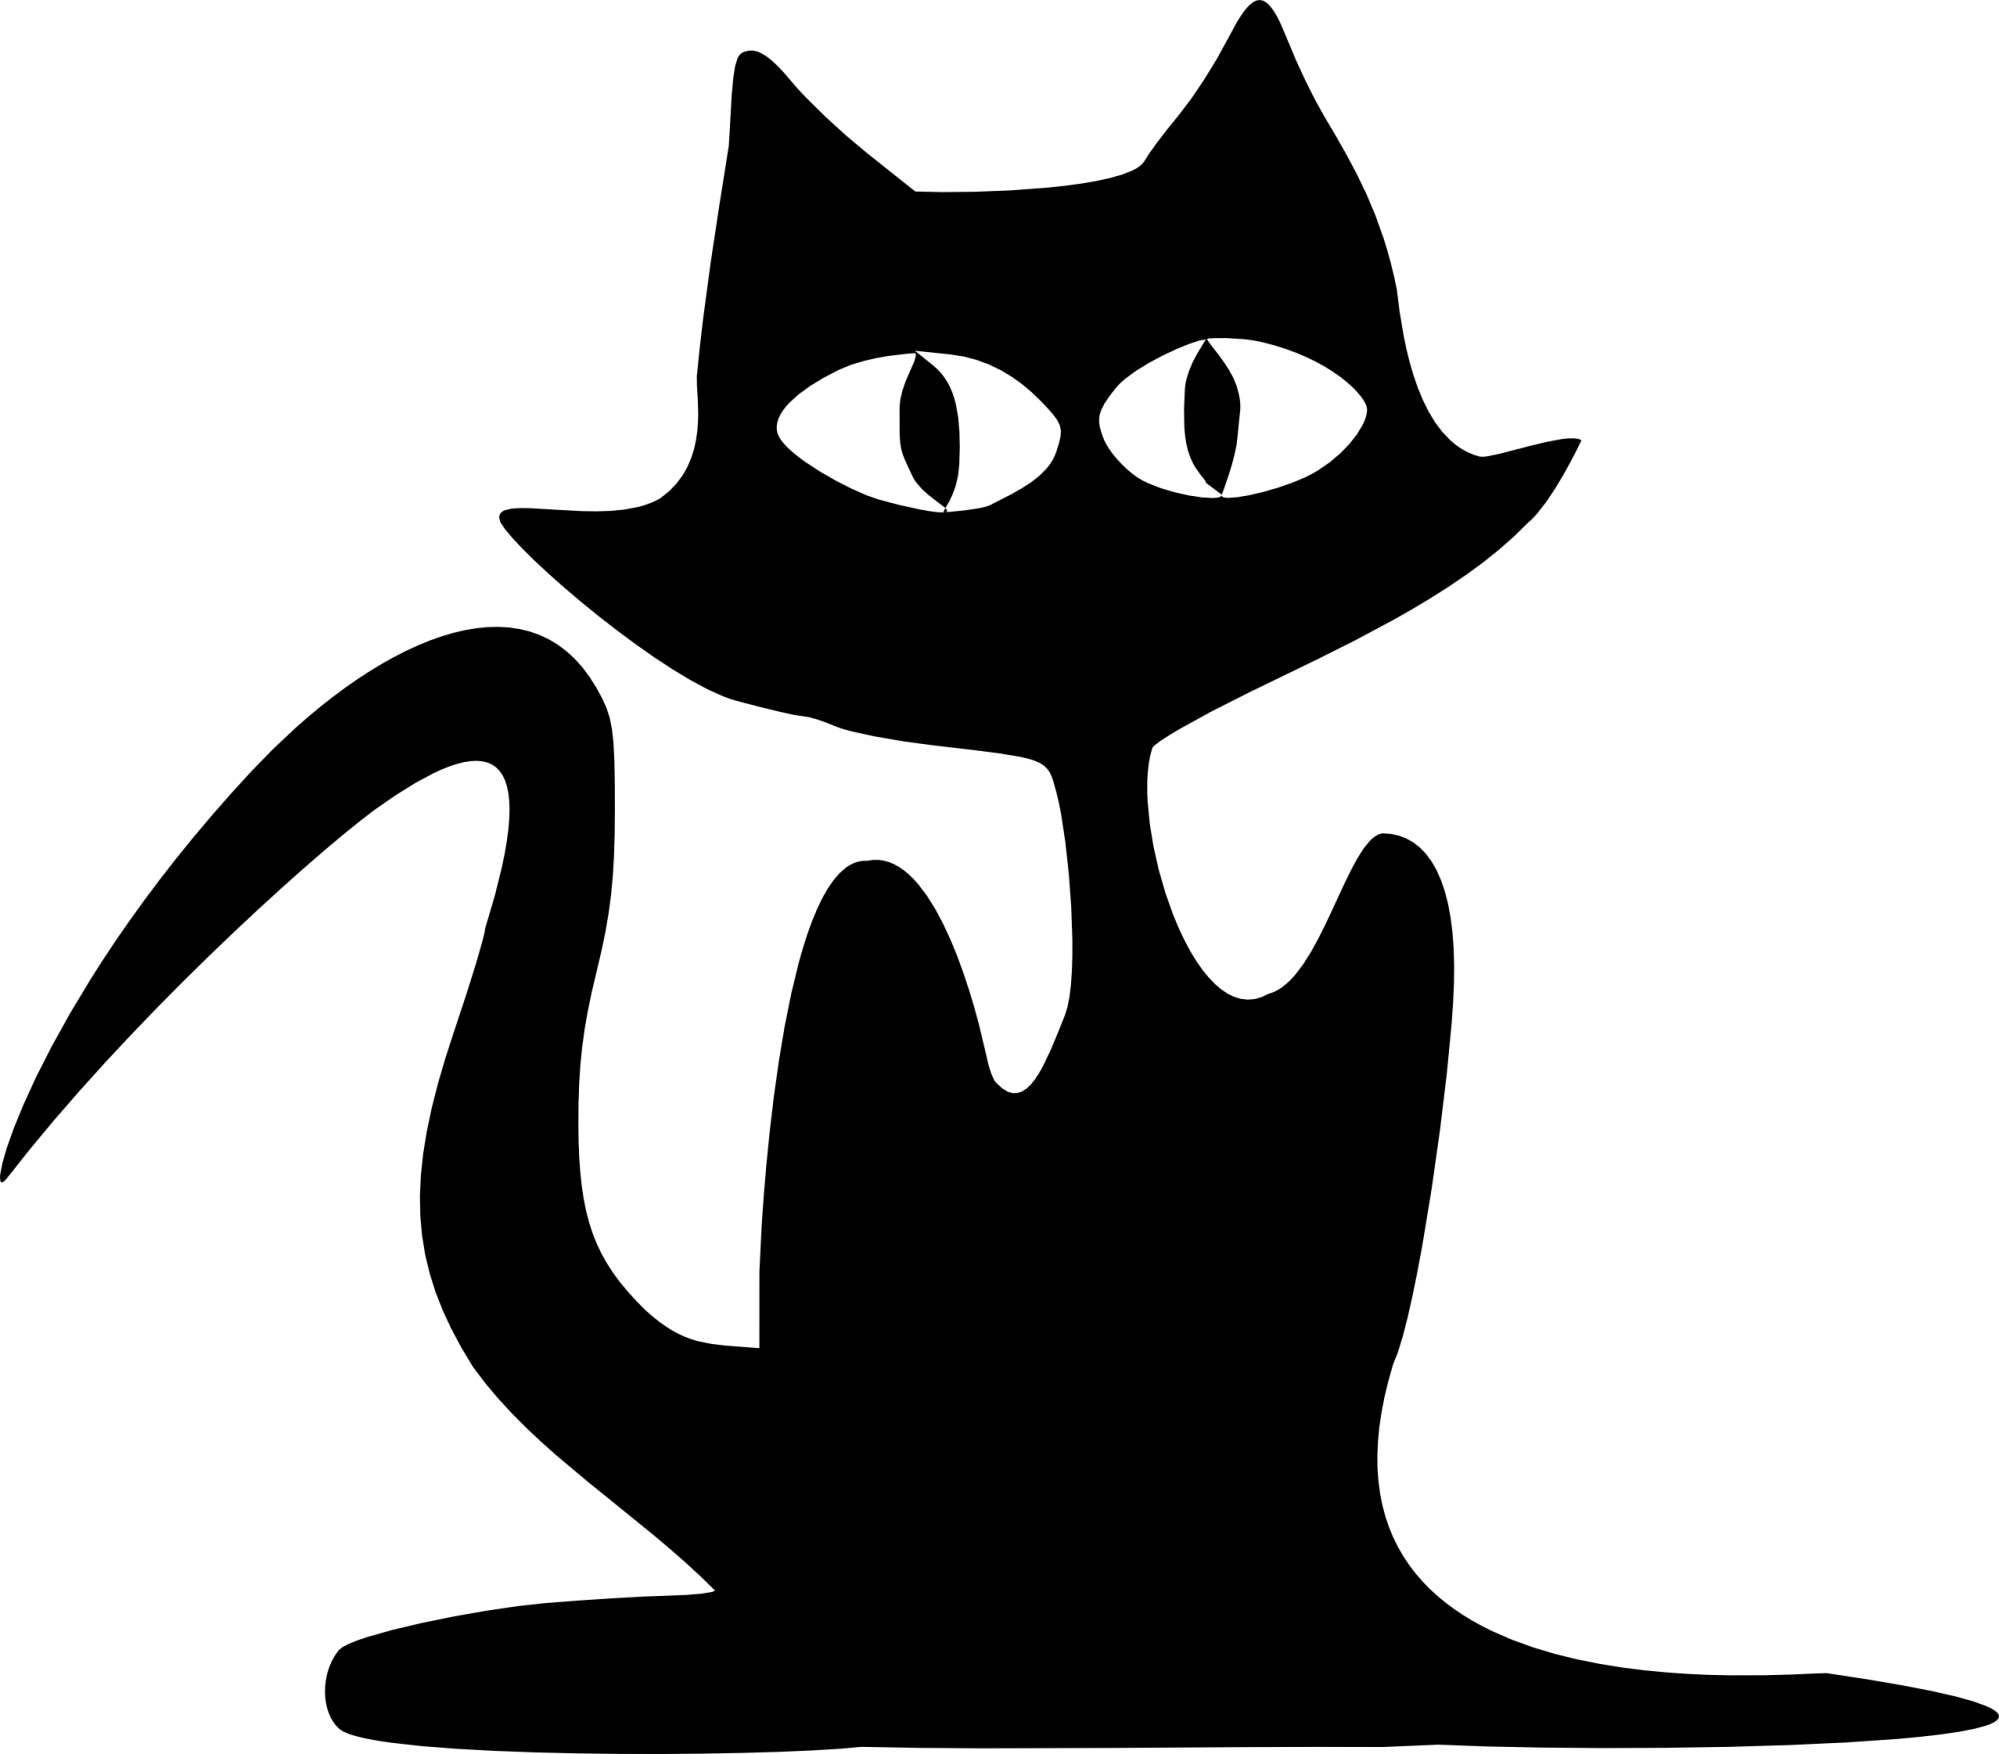 hight resolution of halloween clipart cat free images download clip